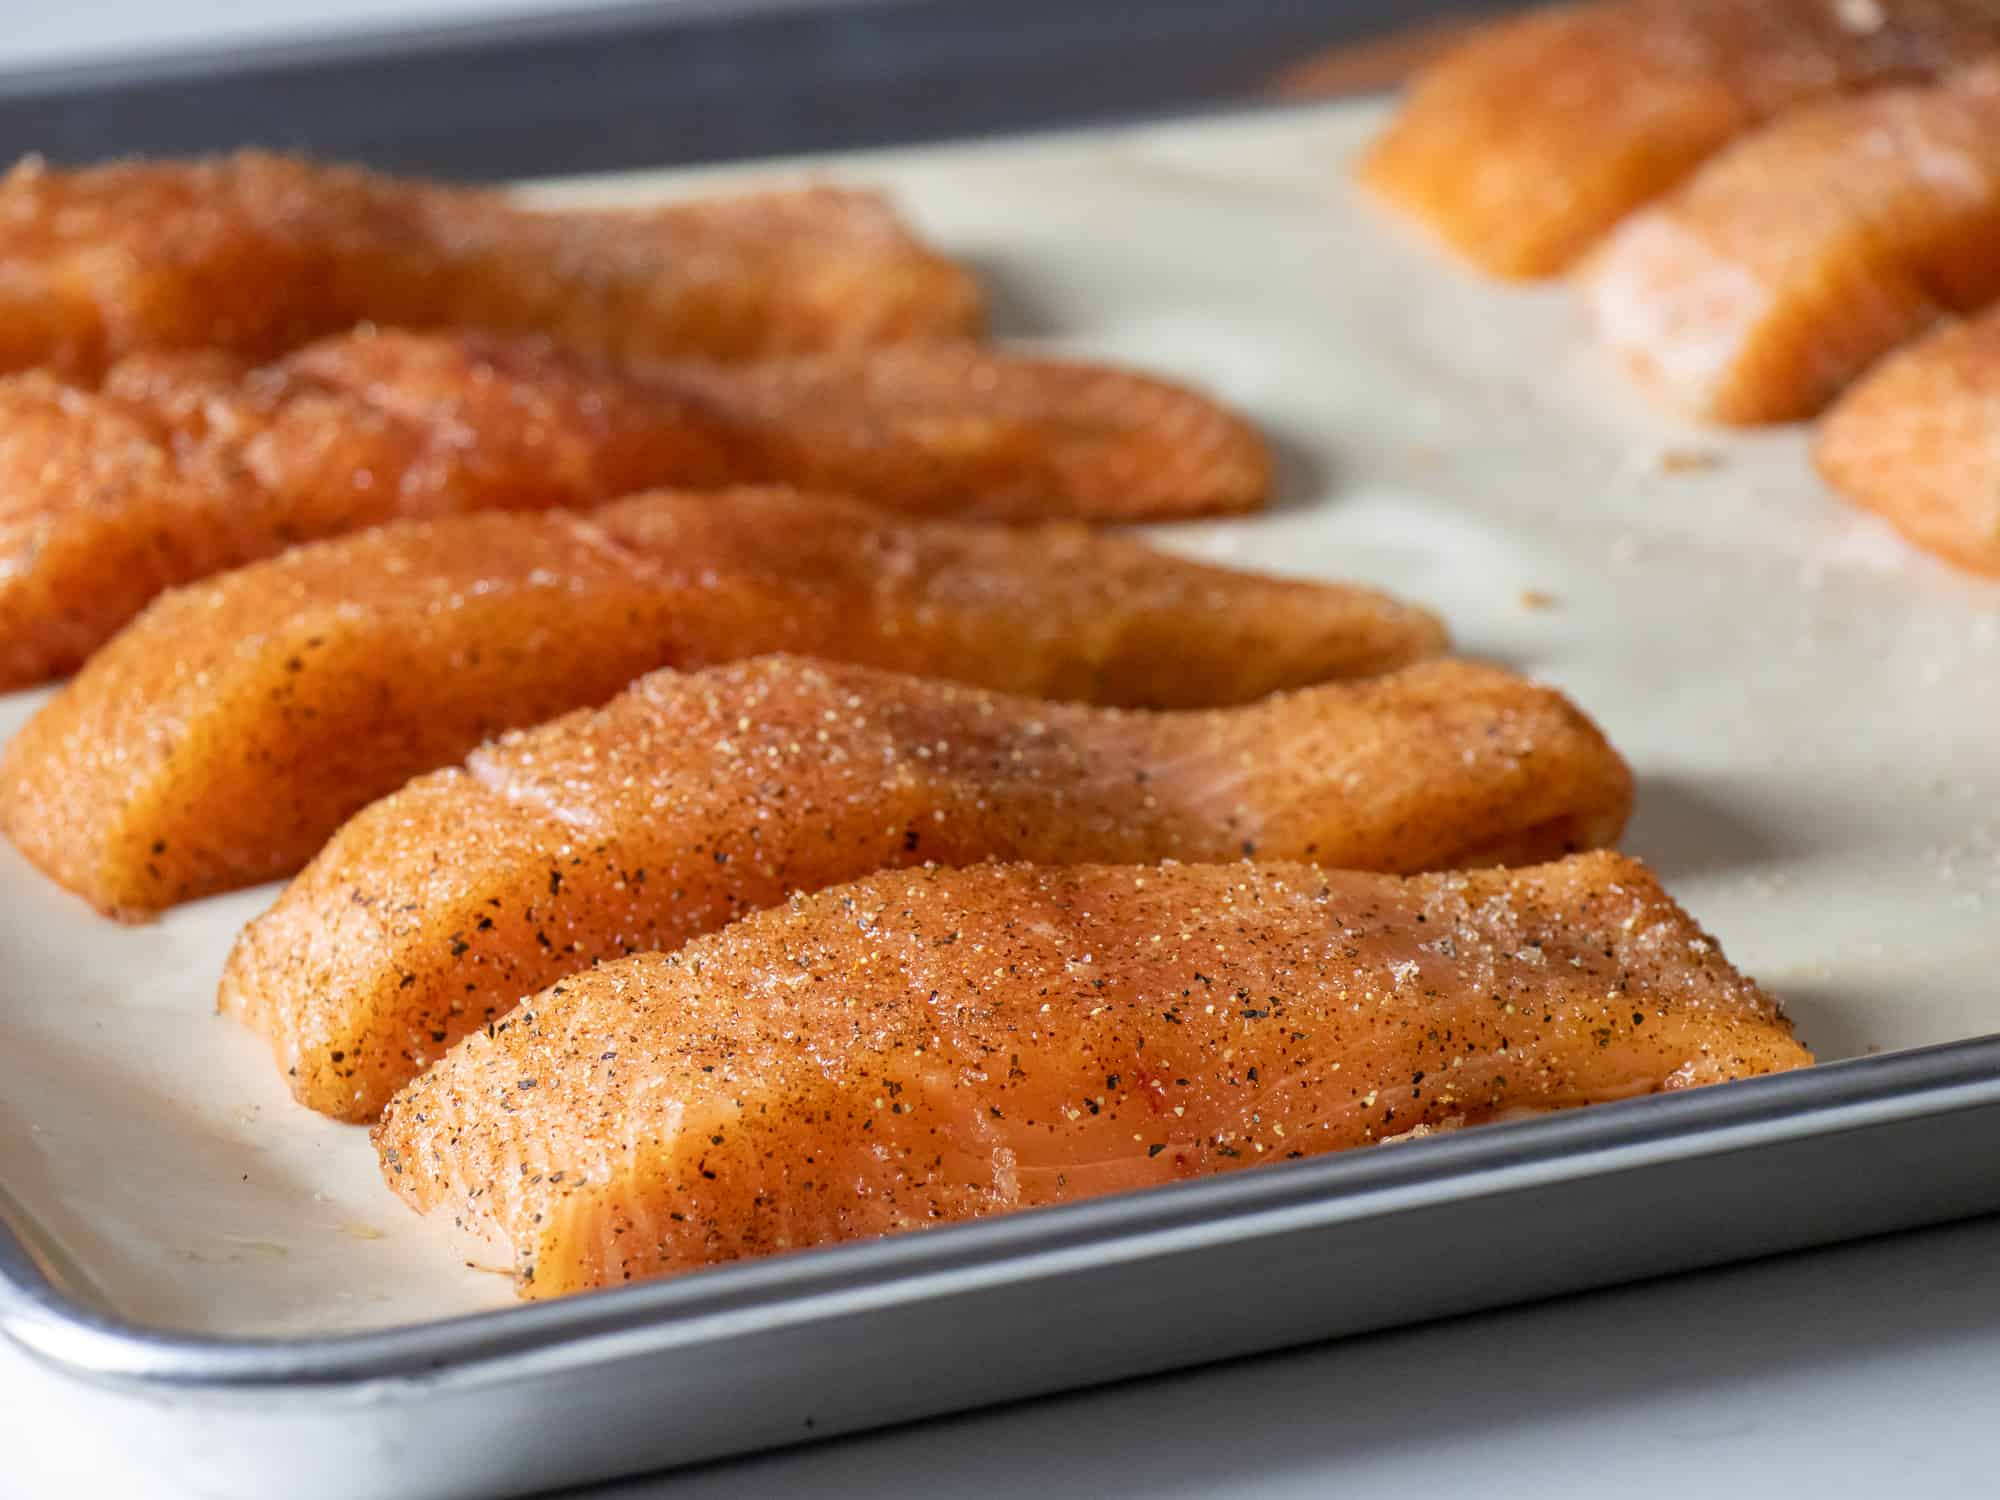 Place the salmon fillets on a baking sheet lined with parchment paper